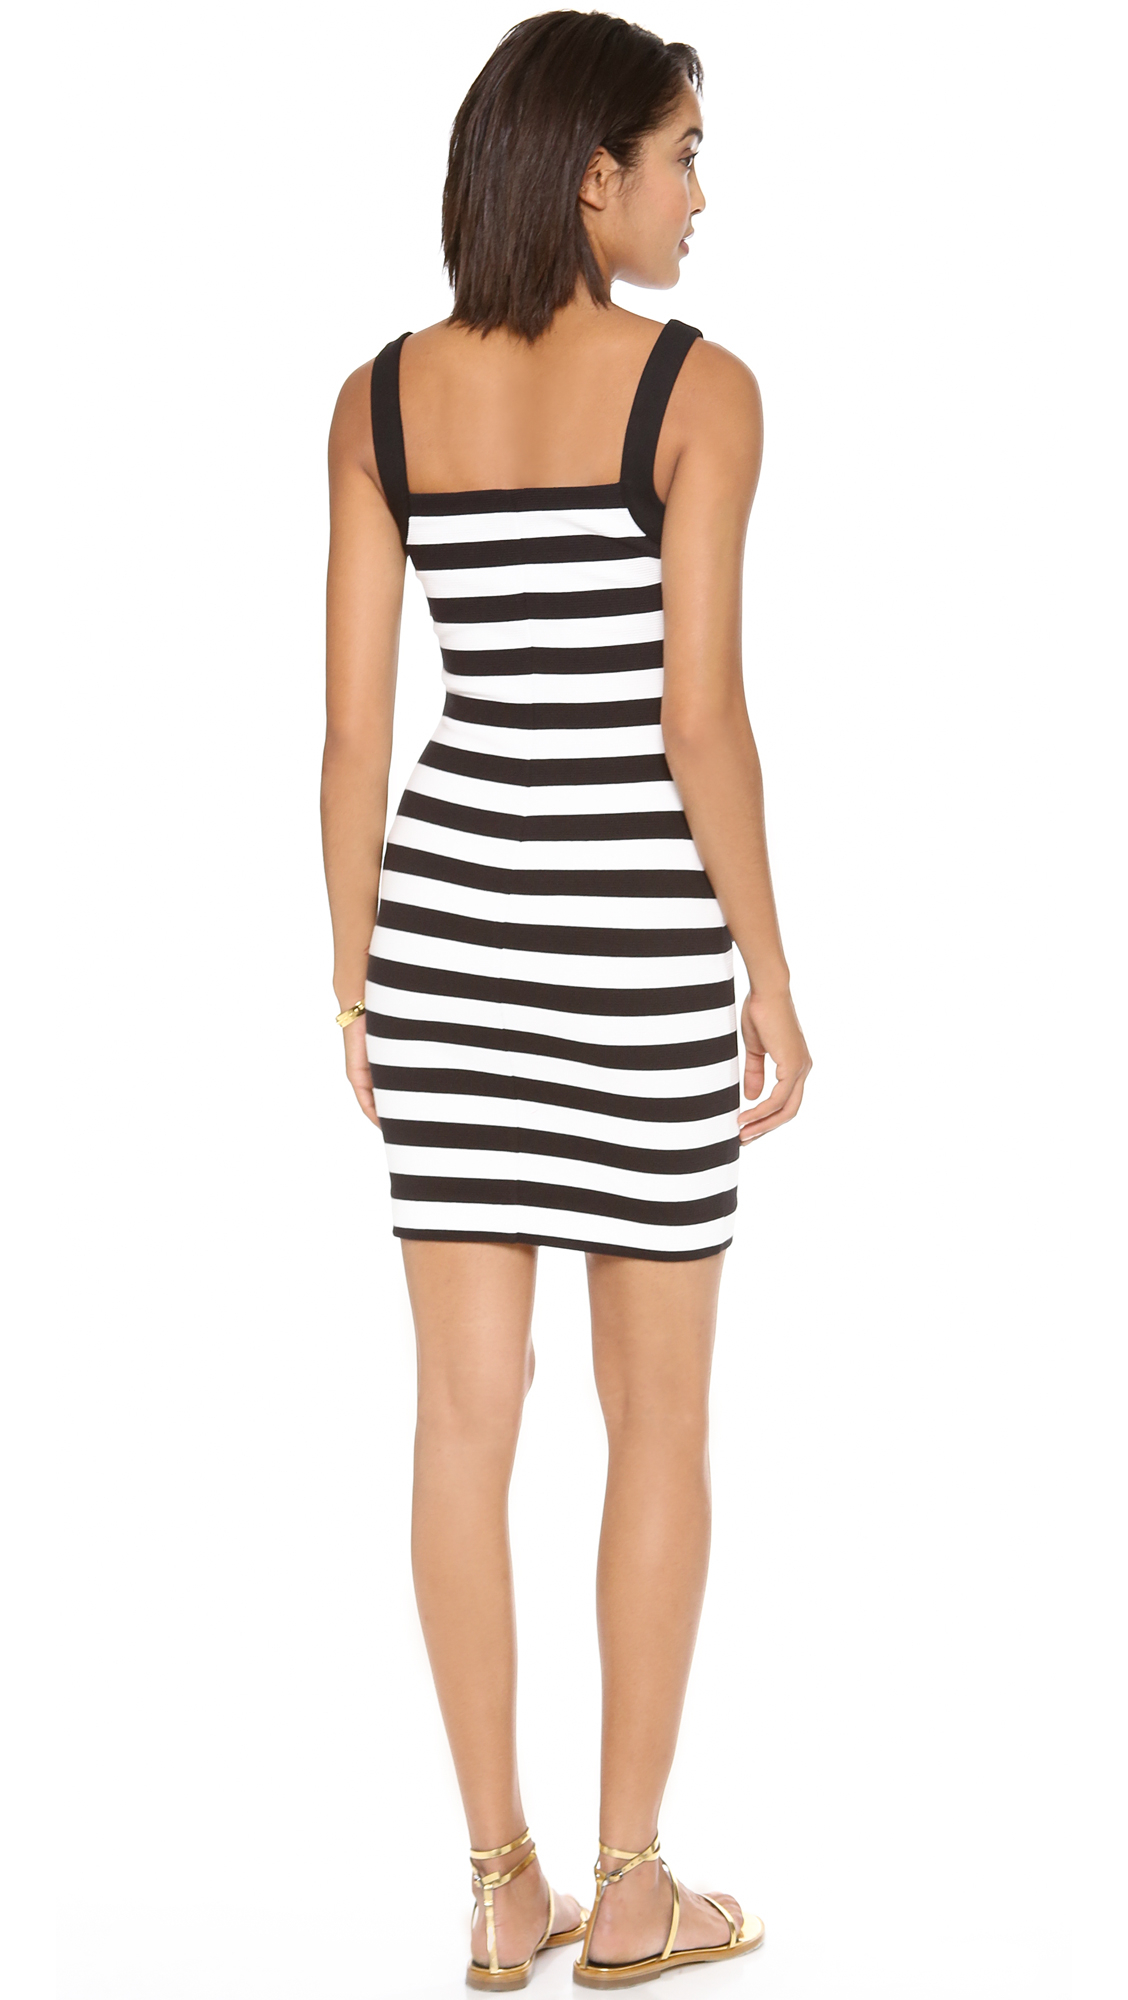 Lyst - Juicy Couture Ottoman Striped Print Dress in Black